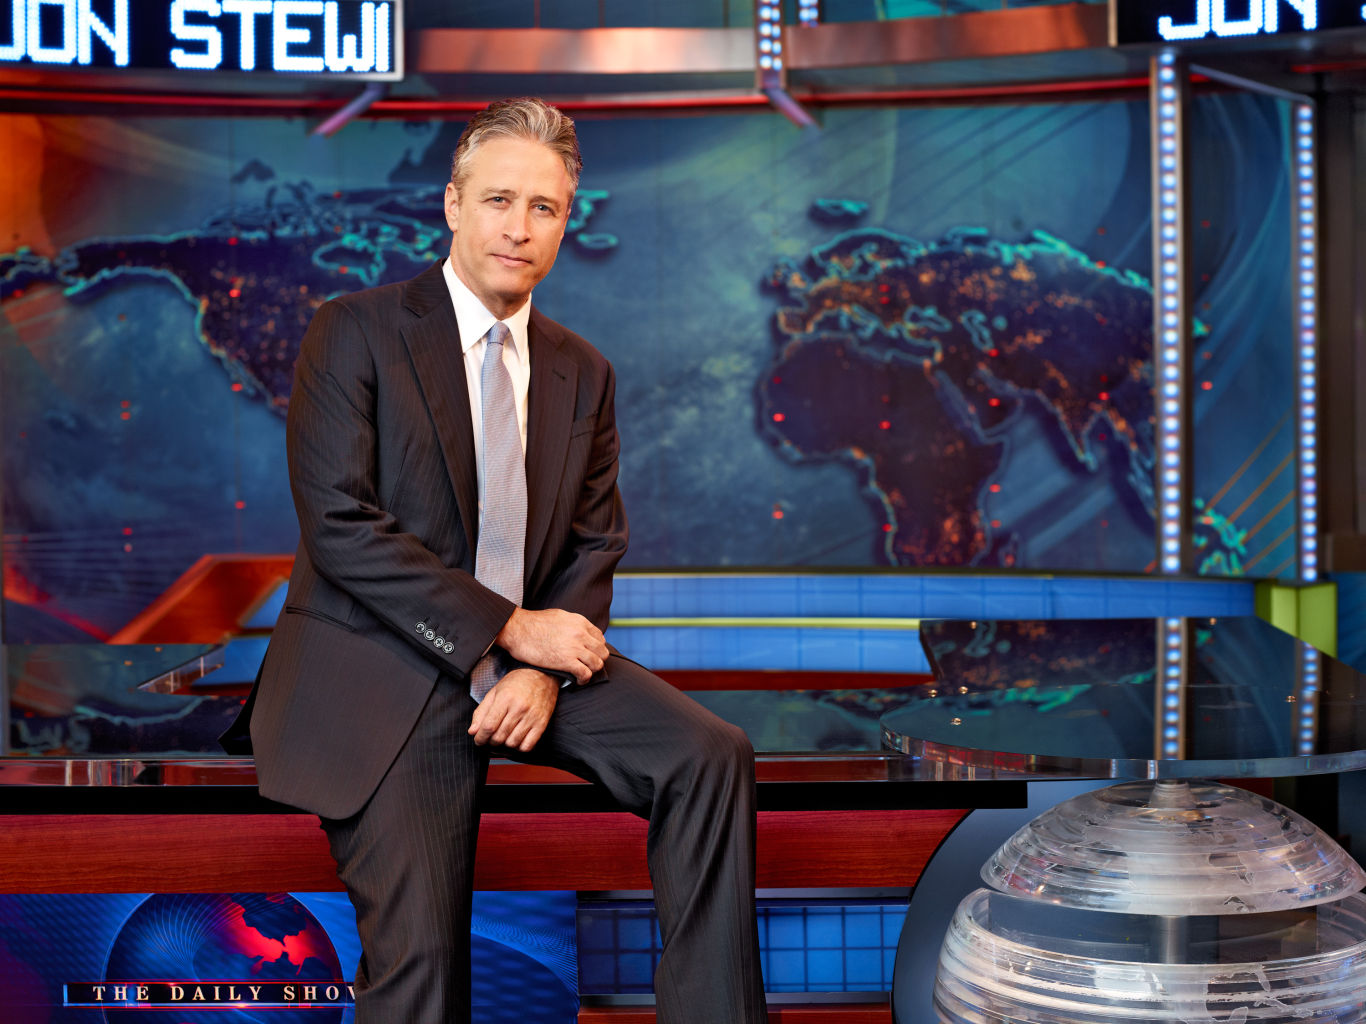 The Daily Show with Jon Stewart to visit Austin for Election 2014 coverage